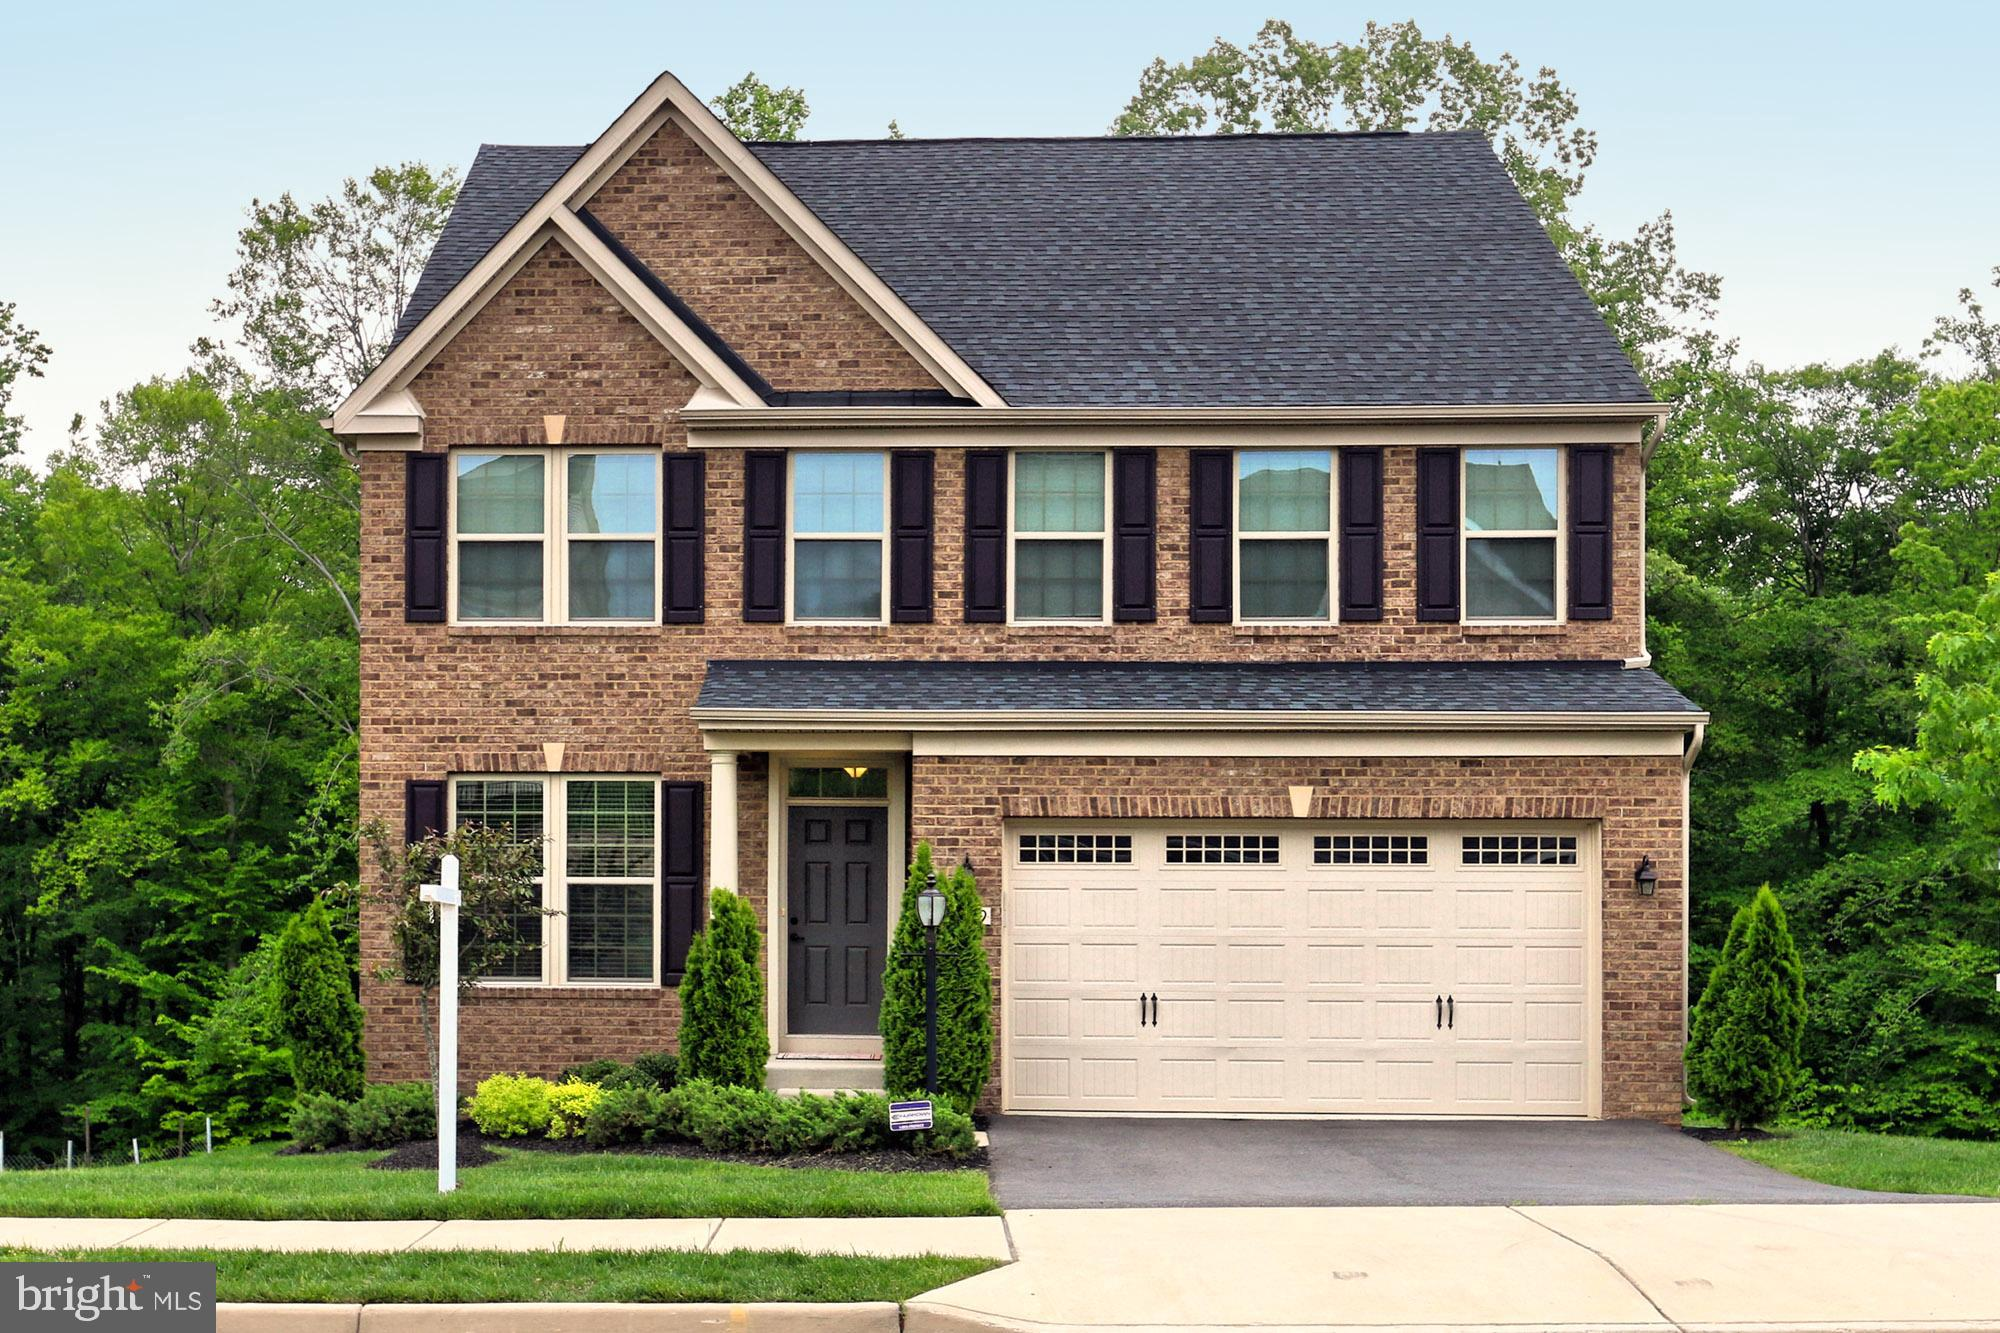 ** Stately Like New Brick Front Colonial Located On Premium Wooded Walk Out Lot! Over $100K in Builder Options! First Floor Study. Separate Dining Room. Family Room With Stone Gas Fire-place. Upgraded Gourmet Kitchen With Large Center Island. Morning Room With Eat In Area Walks Out To Private Trex Deck. The Upper Level Features An Upgraded Master Suite. Two Large bedrooms Share A Full Bath. The Laundry Room Is Conveniently Located On The Upper Level Too! Lower Level Features The Fourth Bedroom, Full Bath, Large Rec Room, Wet Bar and Theater Room! The HomeTheater Is Equipped With A $3000.00 Bose Lifestyle System. Both The Great Room And Rec Room Have Wireless, Concealed Speakers That Will Access Your Favorite Music From A Smart Phone Or Computer. The Walk Out Lower Level Provides Plenty Of Light And Flexibility. Colgan High School District!